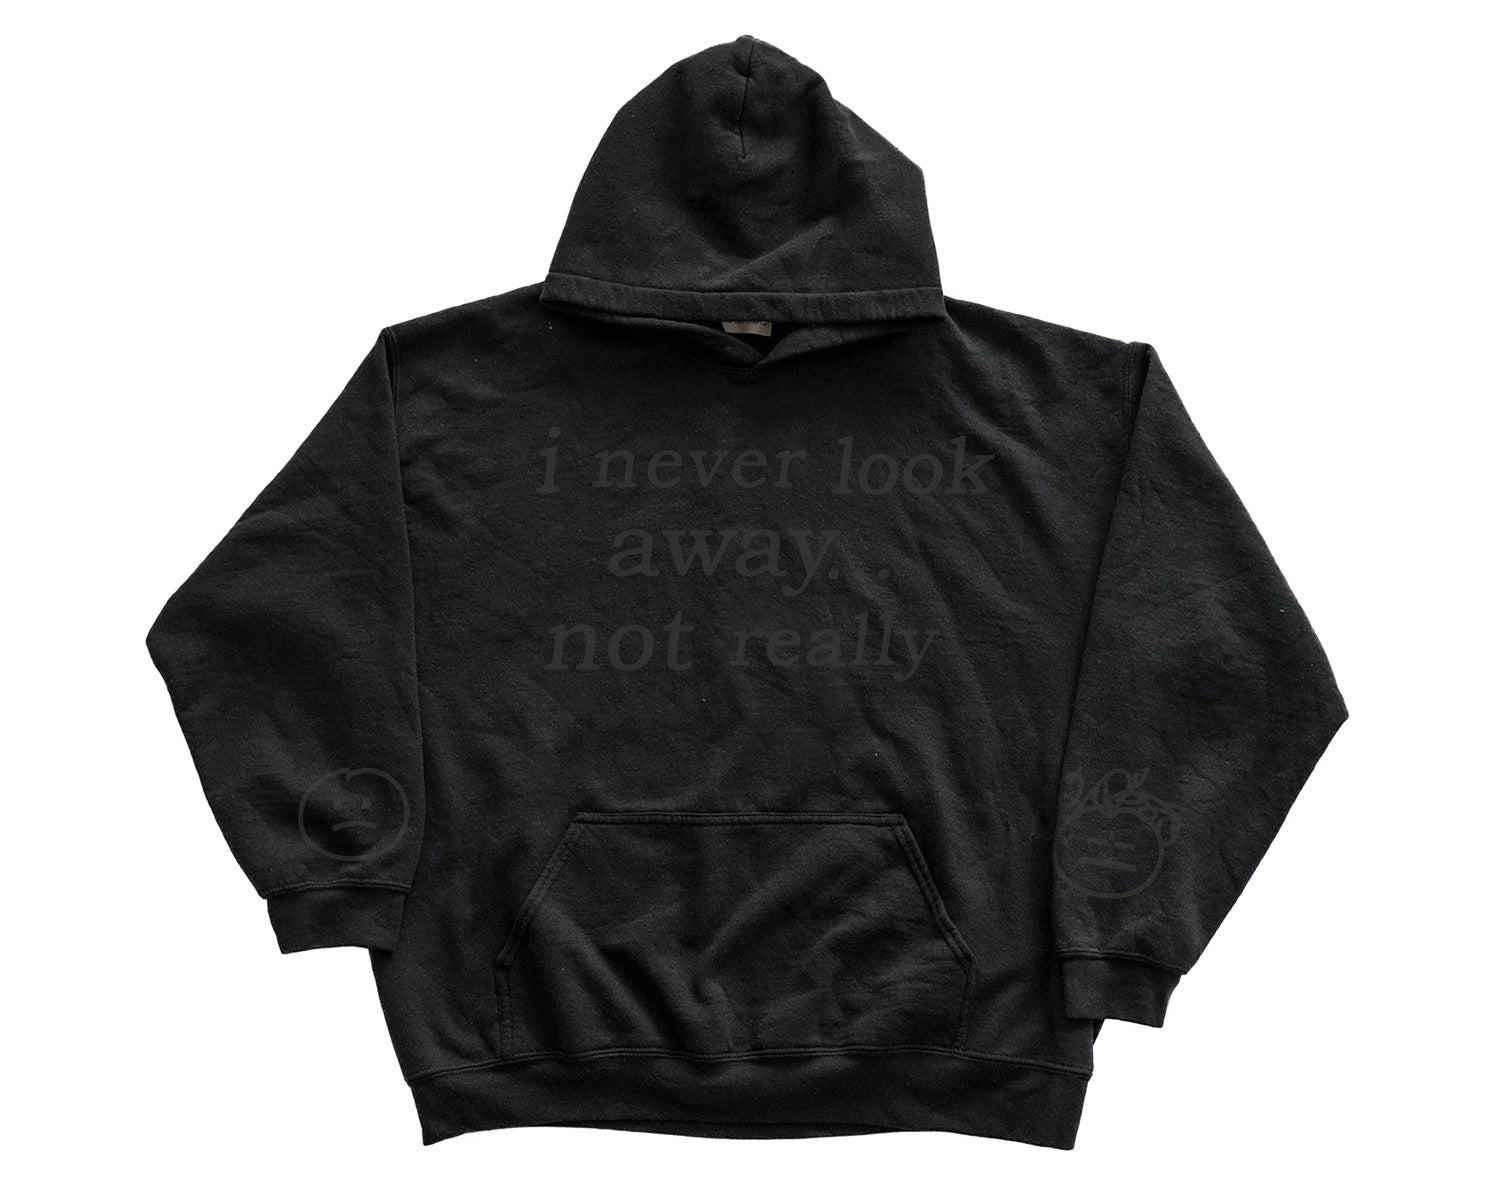 NOT REALLY HOODED SWEATSHIRT BLACK ON BLACK